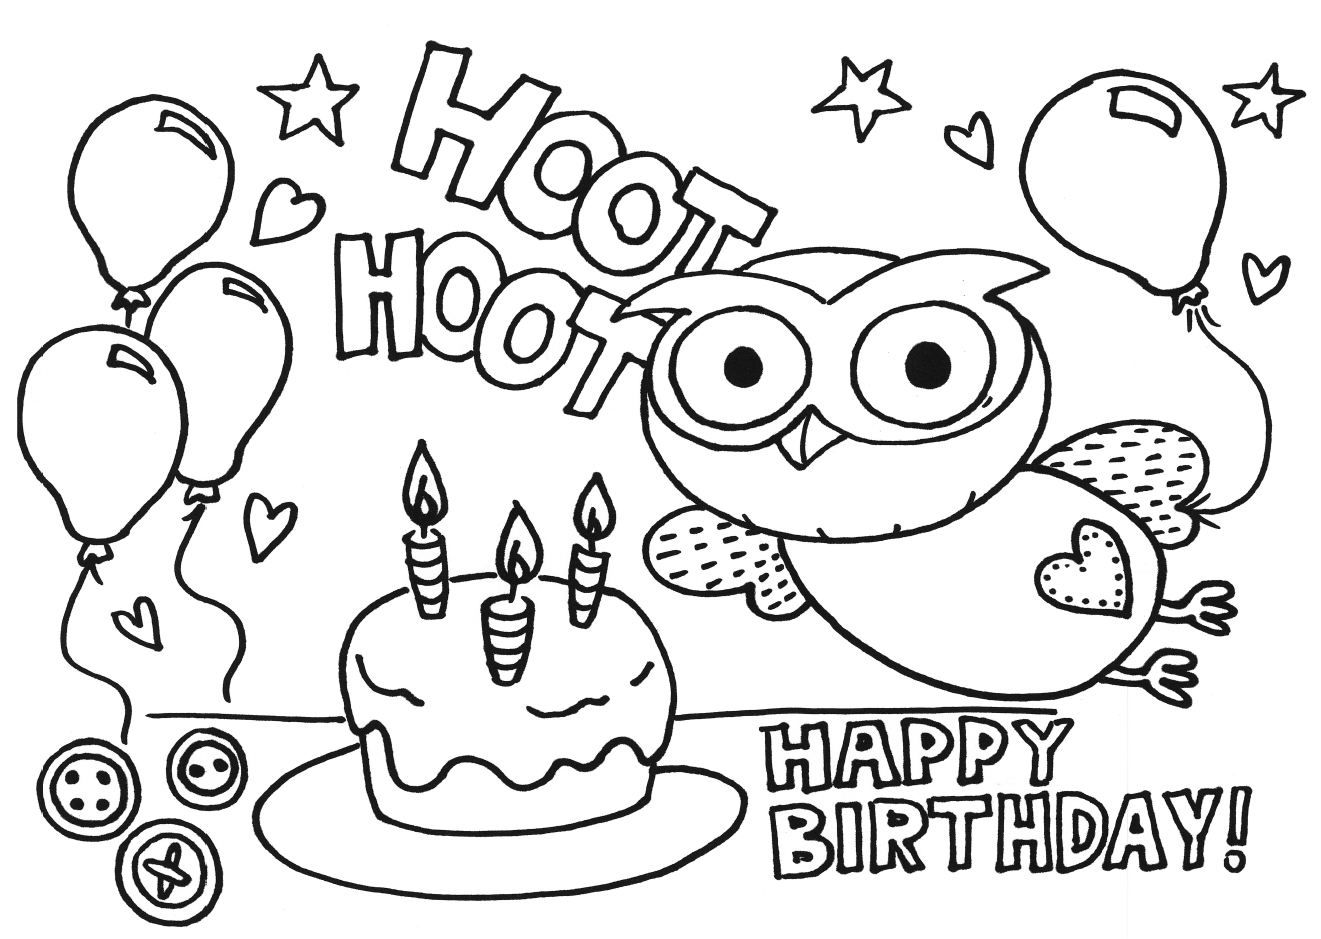 Printable Happy Birthday Coloring Pages Happy Birthday Coloring Pages Birthday Coloring Pages Coloring Birthday Cards